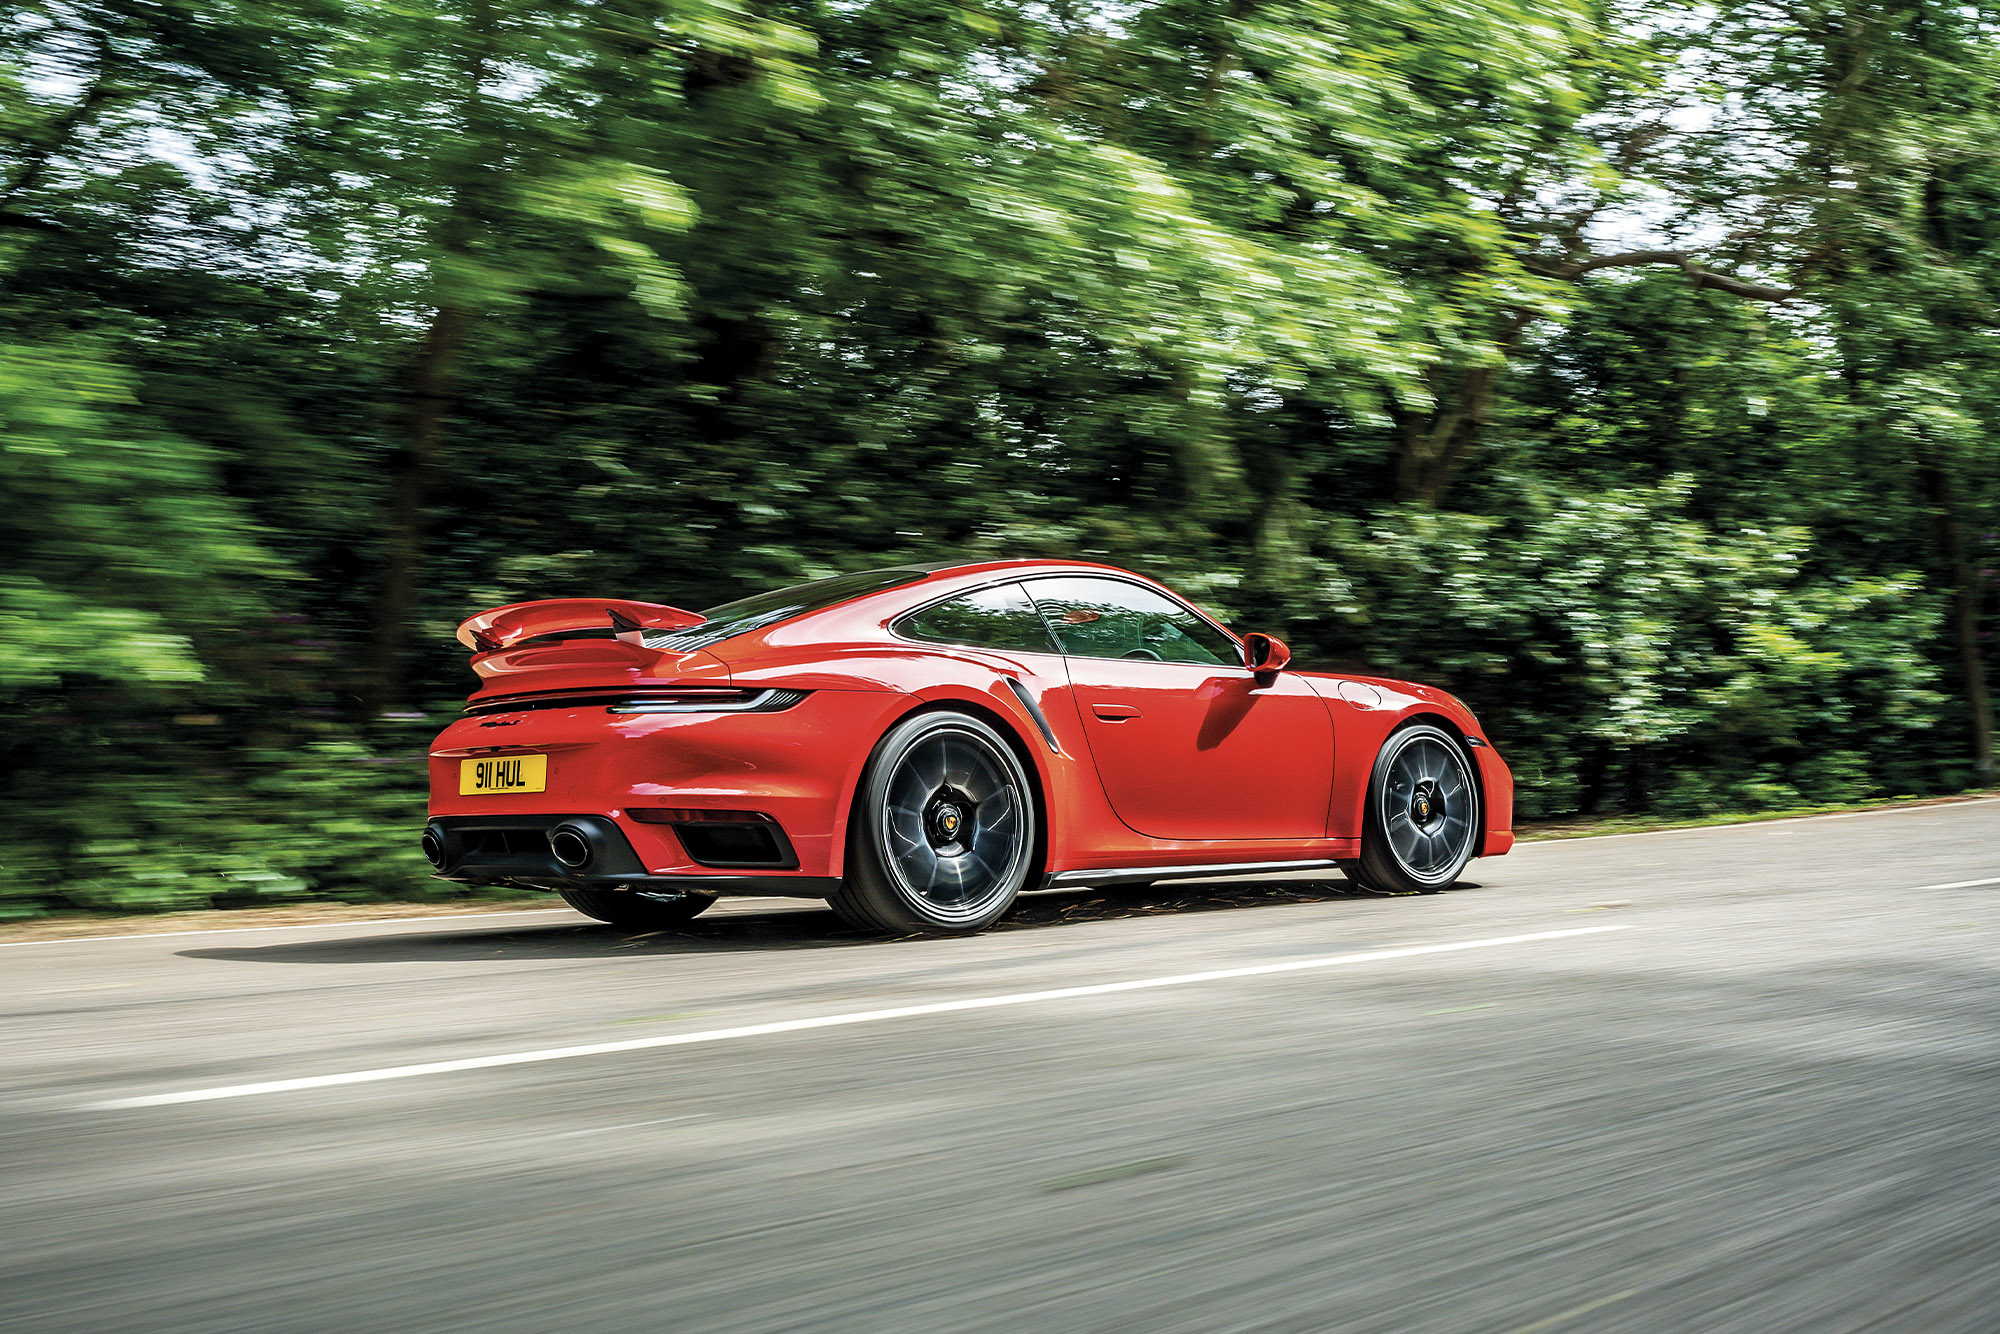 2020 Porsche 911 Turbo S rear view